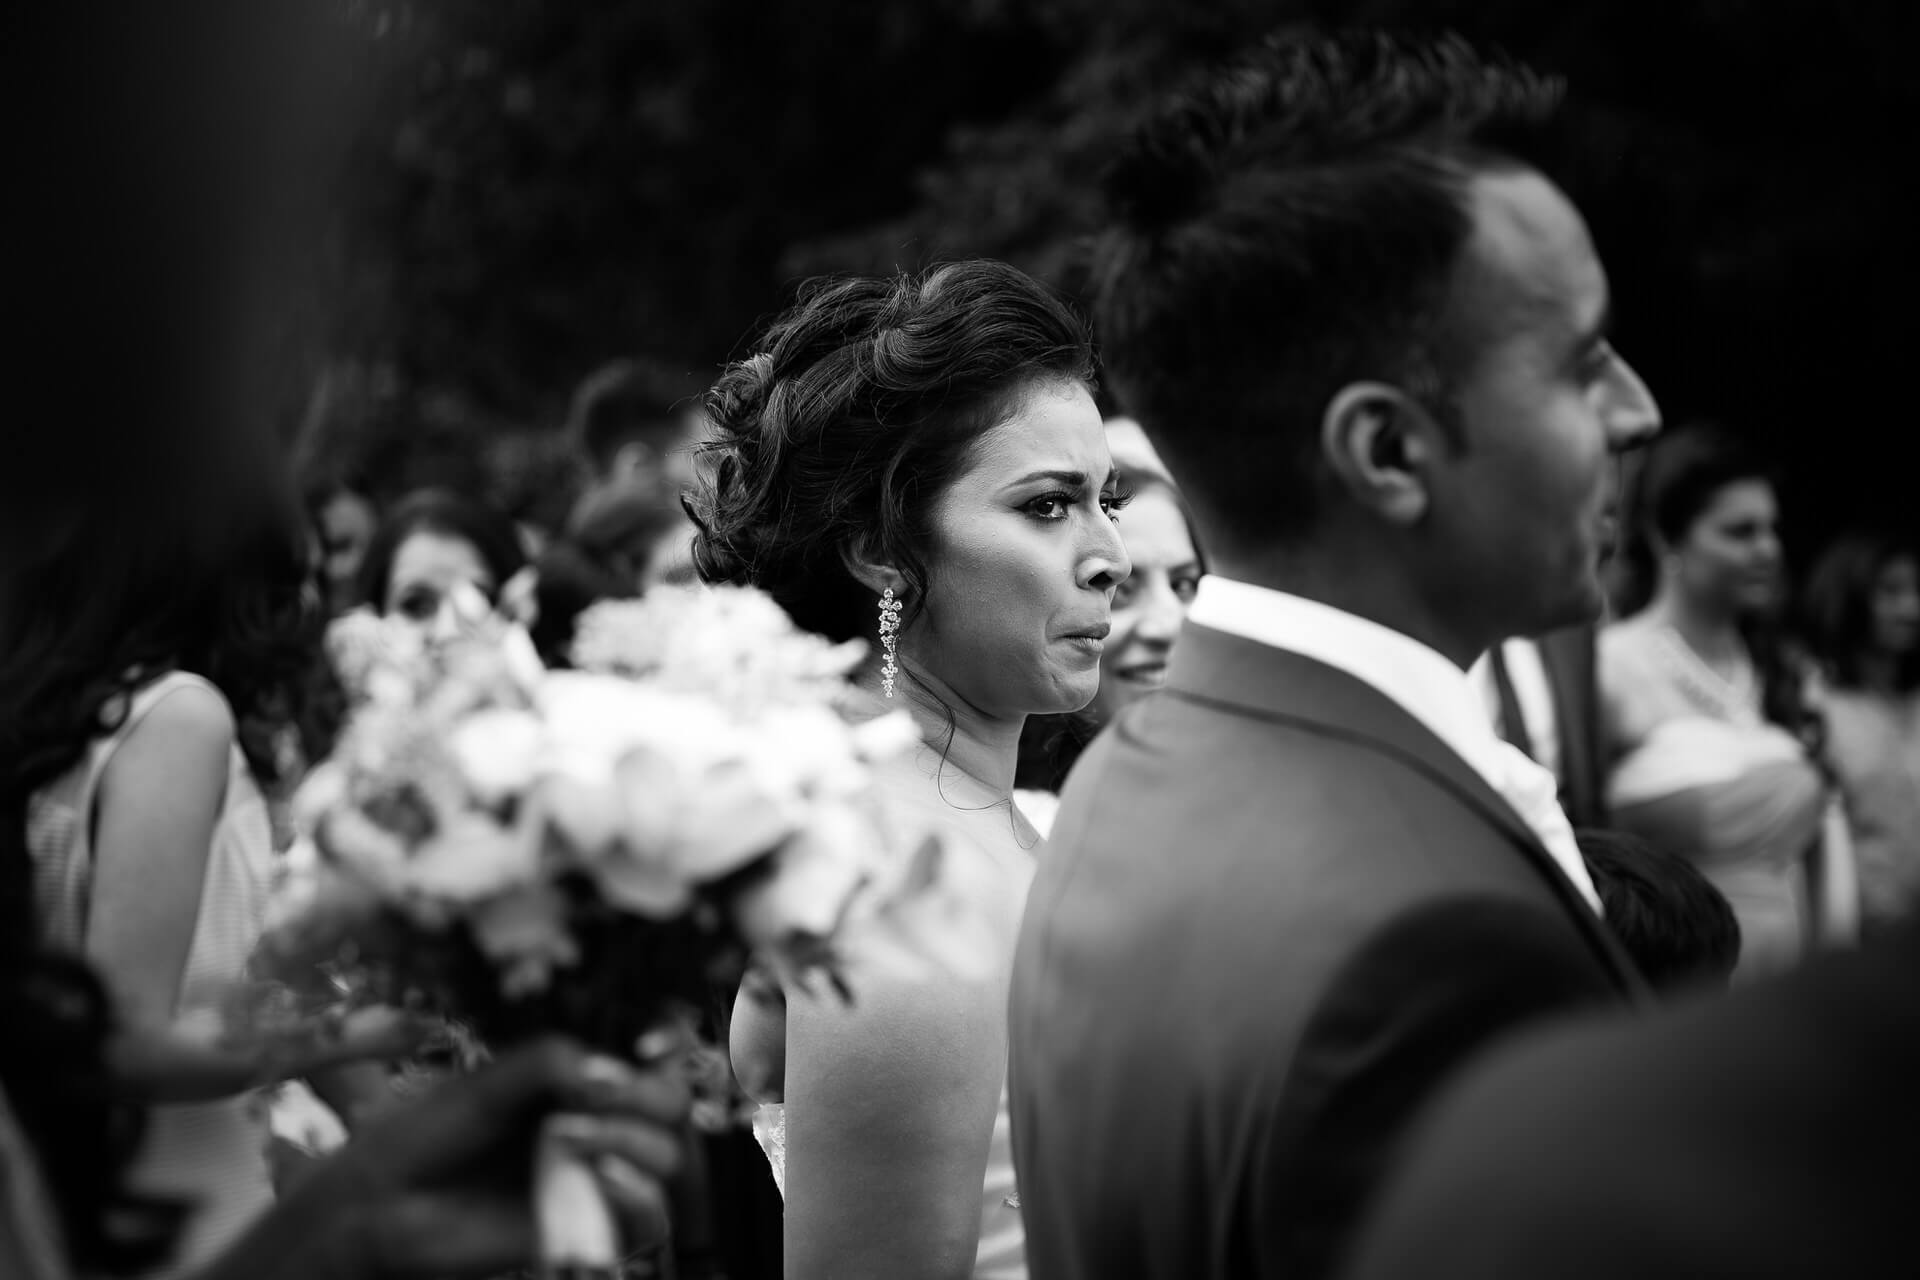 Asian wedding bride's reaction to speeches